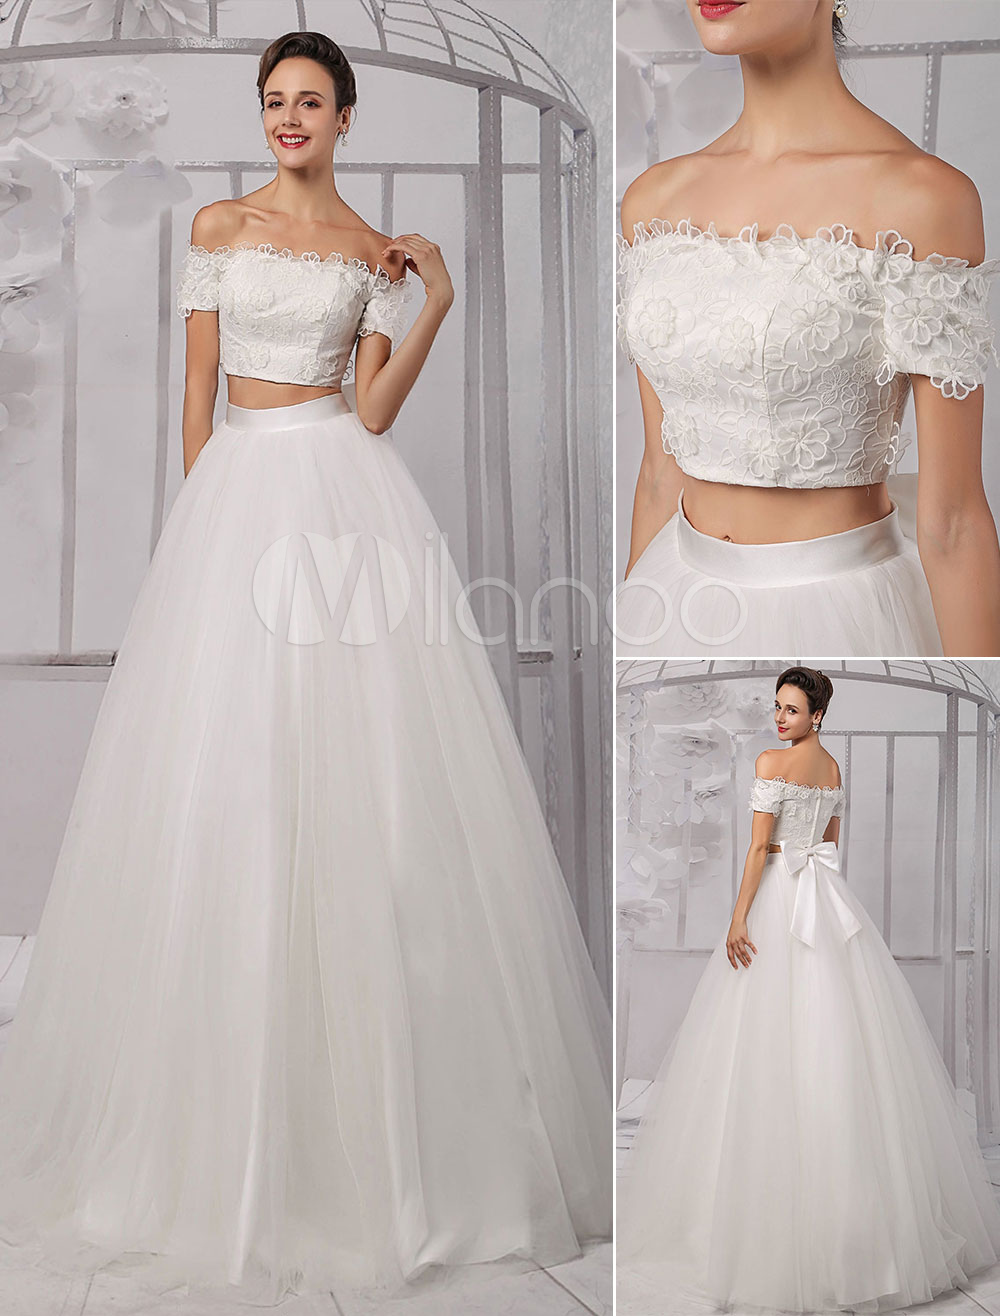 Two-Pieces Crop Top Off-the-shoulder Ball Gown Wedding Dress With Floral Bodice And Tulle Skirt Milanoo